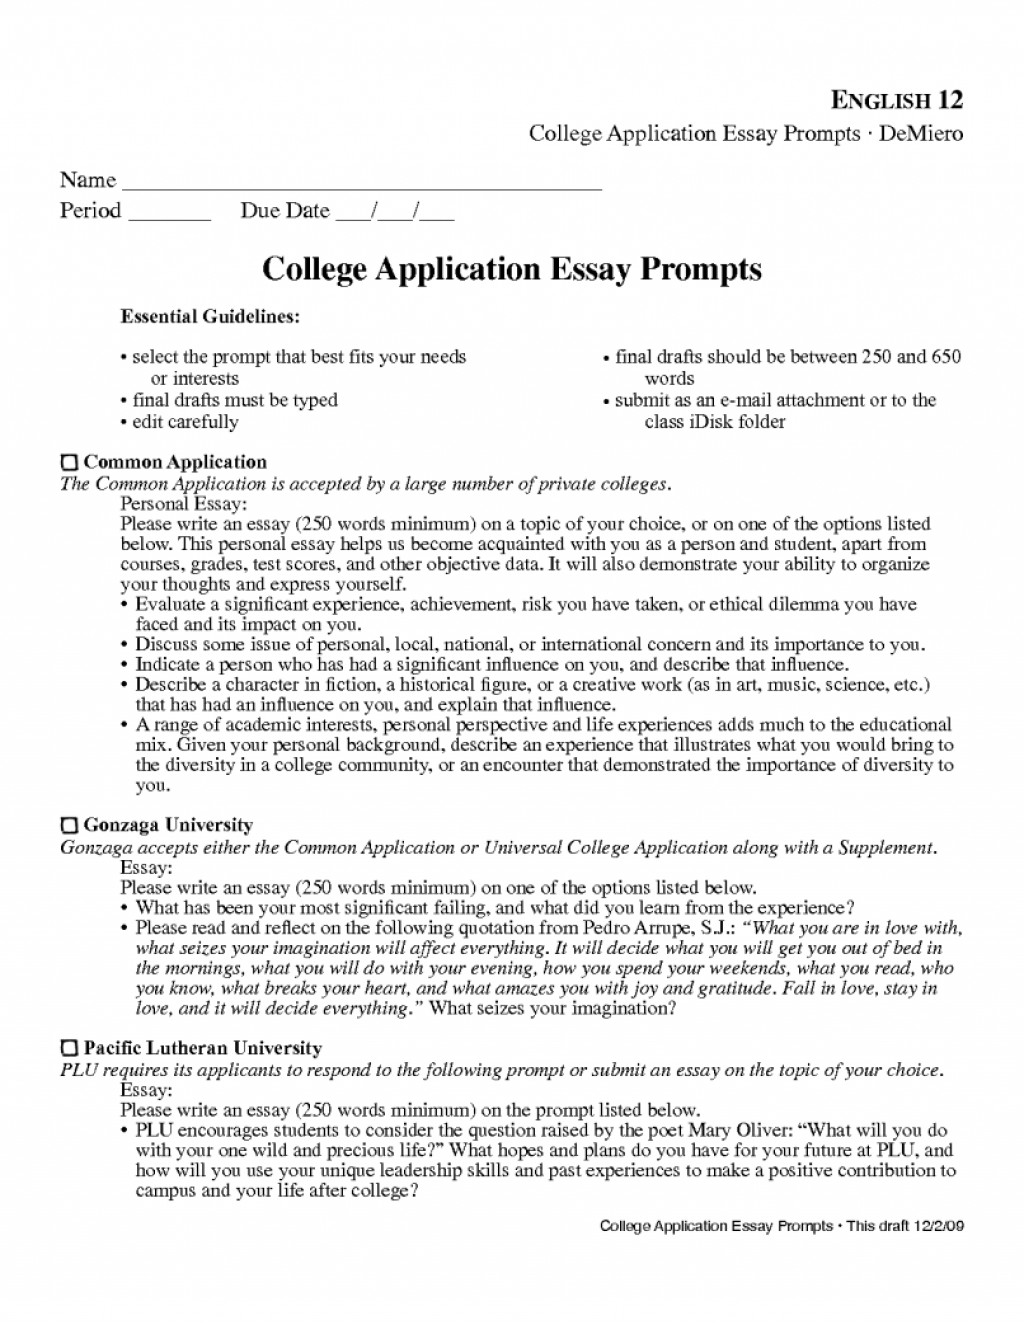 002 Essay Example The Common App Prompts Poemdoc Or Best College Using Quotes In Essays Quotesgram Admission L Ucf Prompt Boston Uc Harvard Texas Mit Amherst Pomona Amazing Application 2017 Examples Tips Large